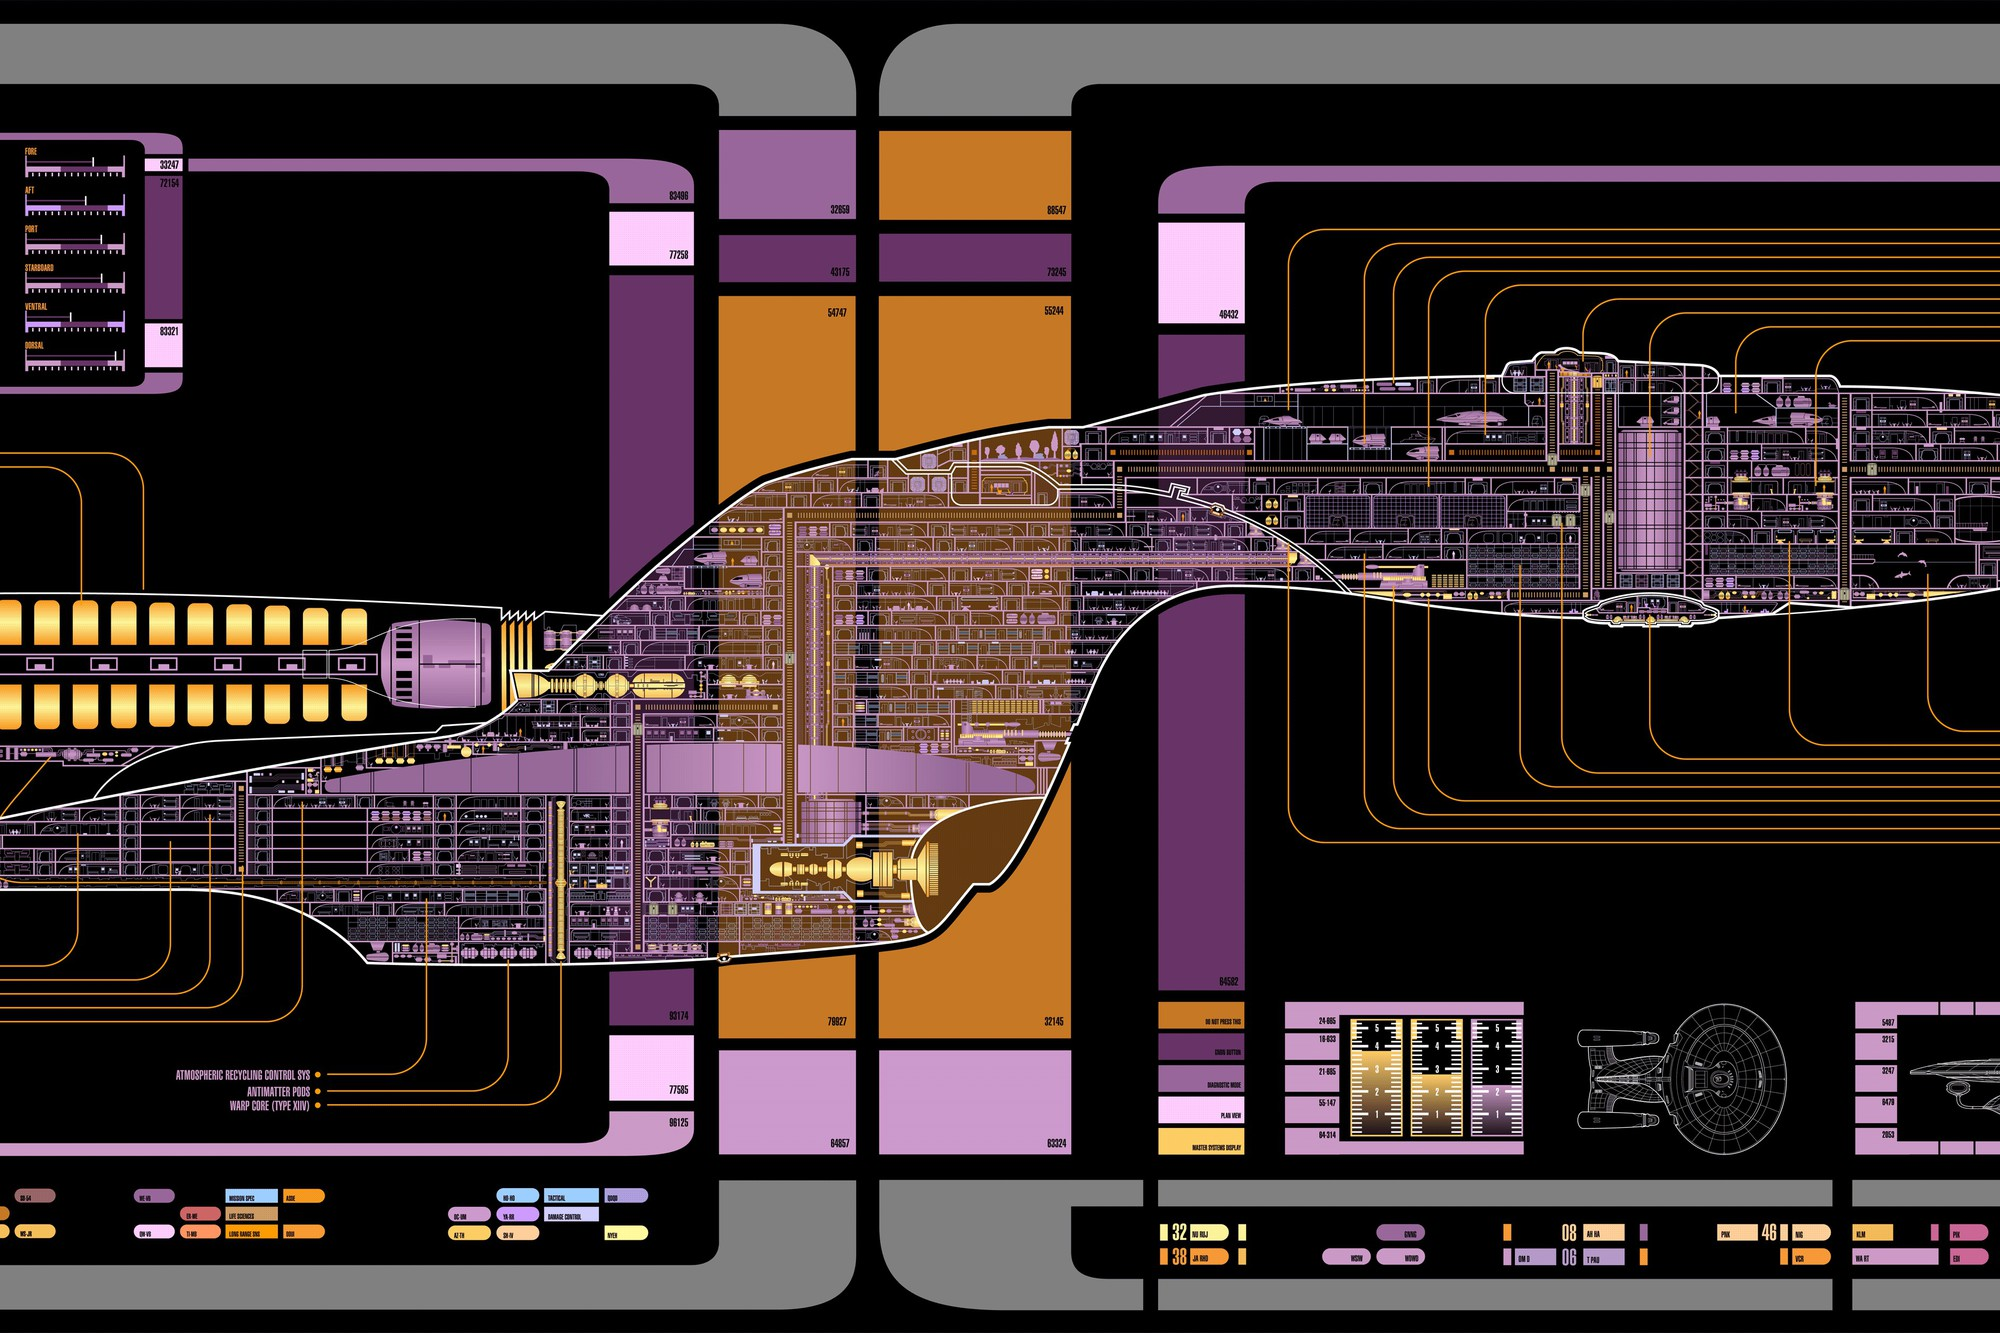 Star trek the voyager final schematics wallpaper ... Voyager Schematic on